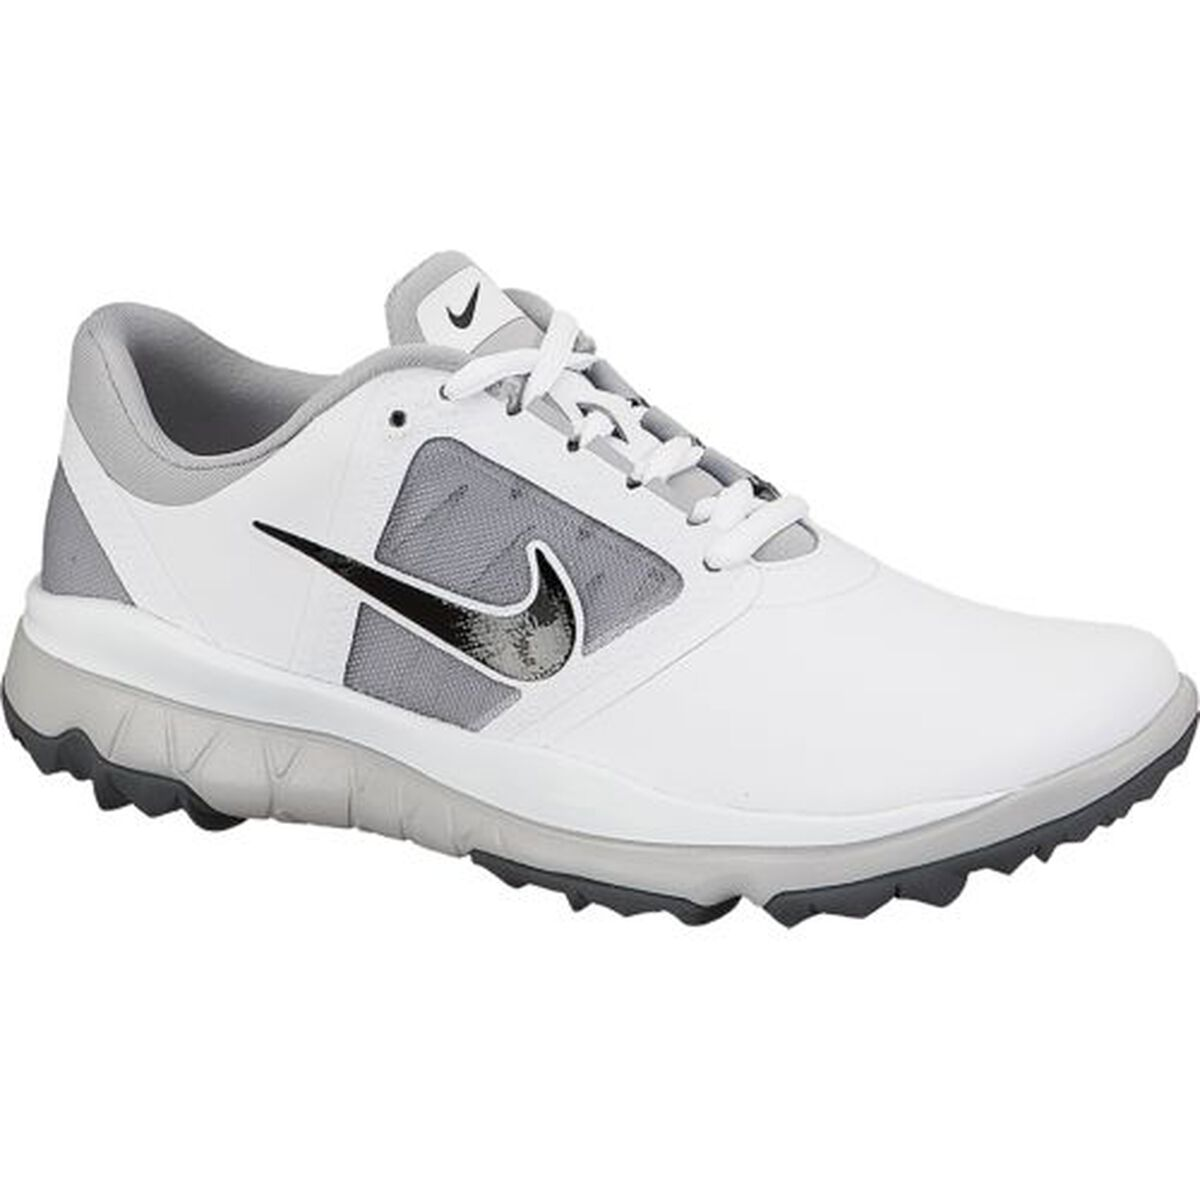 finest selection 3f46d 06665 Nike FI Impact Womens Golf Shoe - White Zoom Image